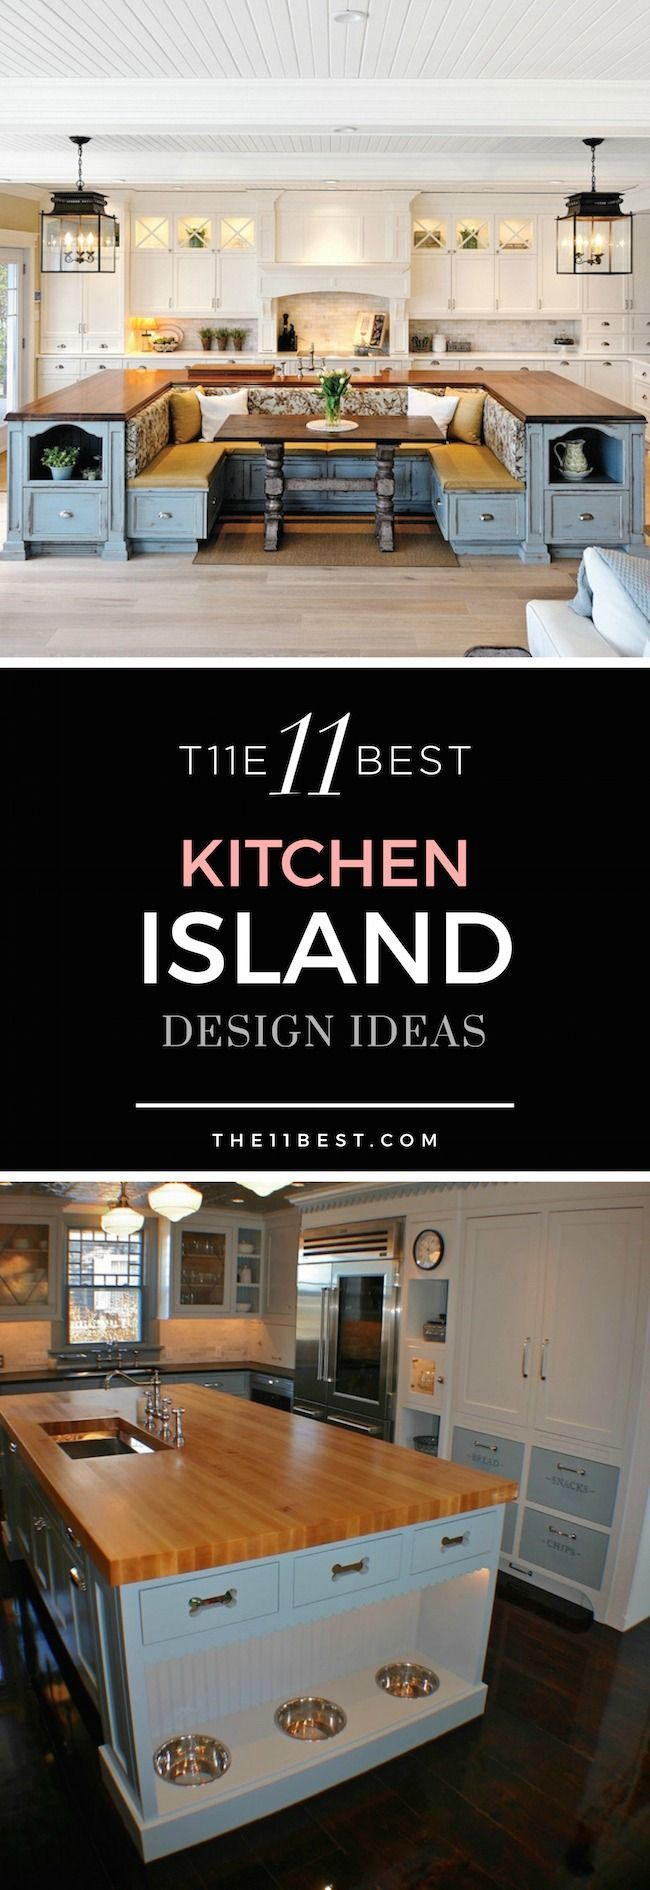 best kitchen images on pinterest